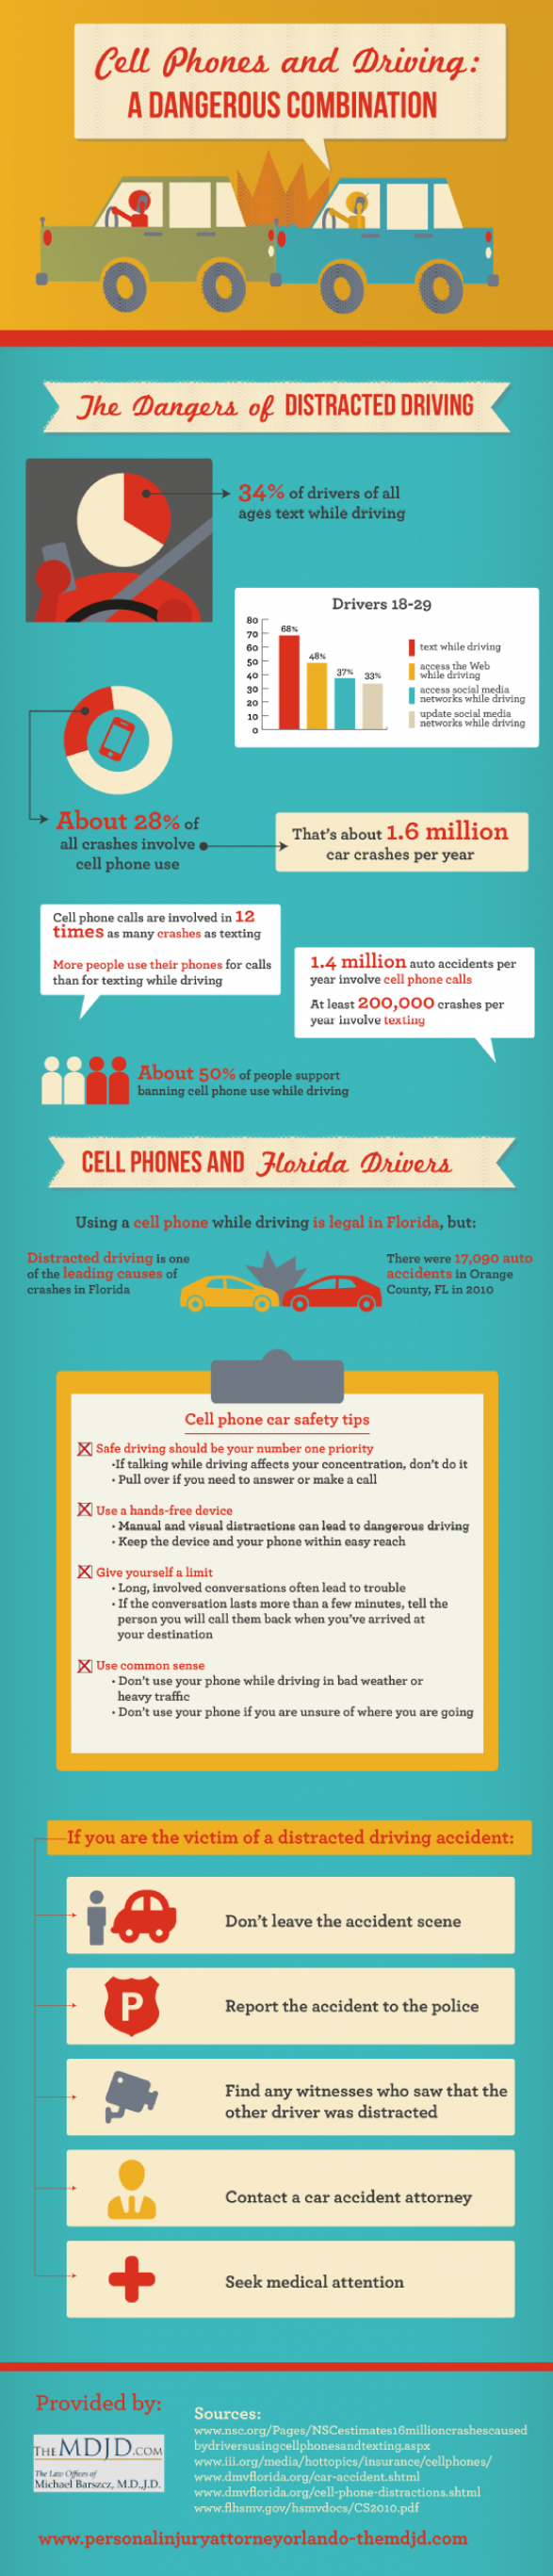 Cell Phones and Driving: A Dangerous Combination